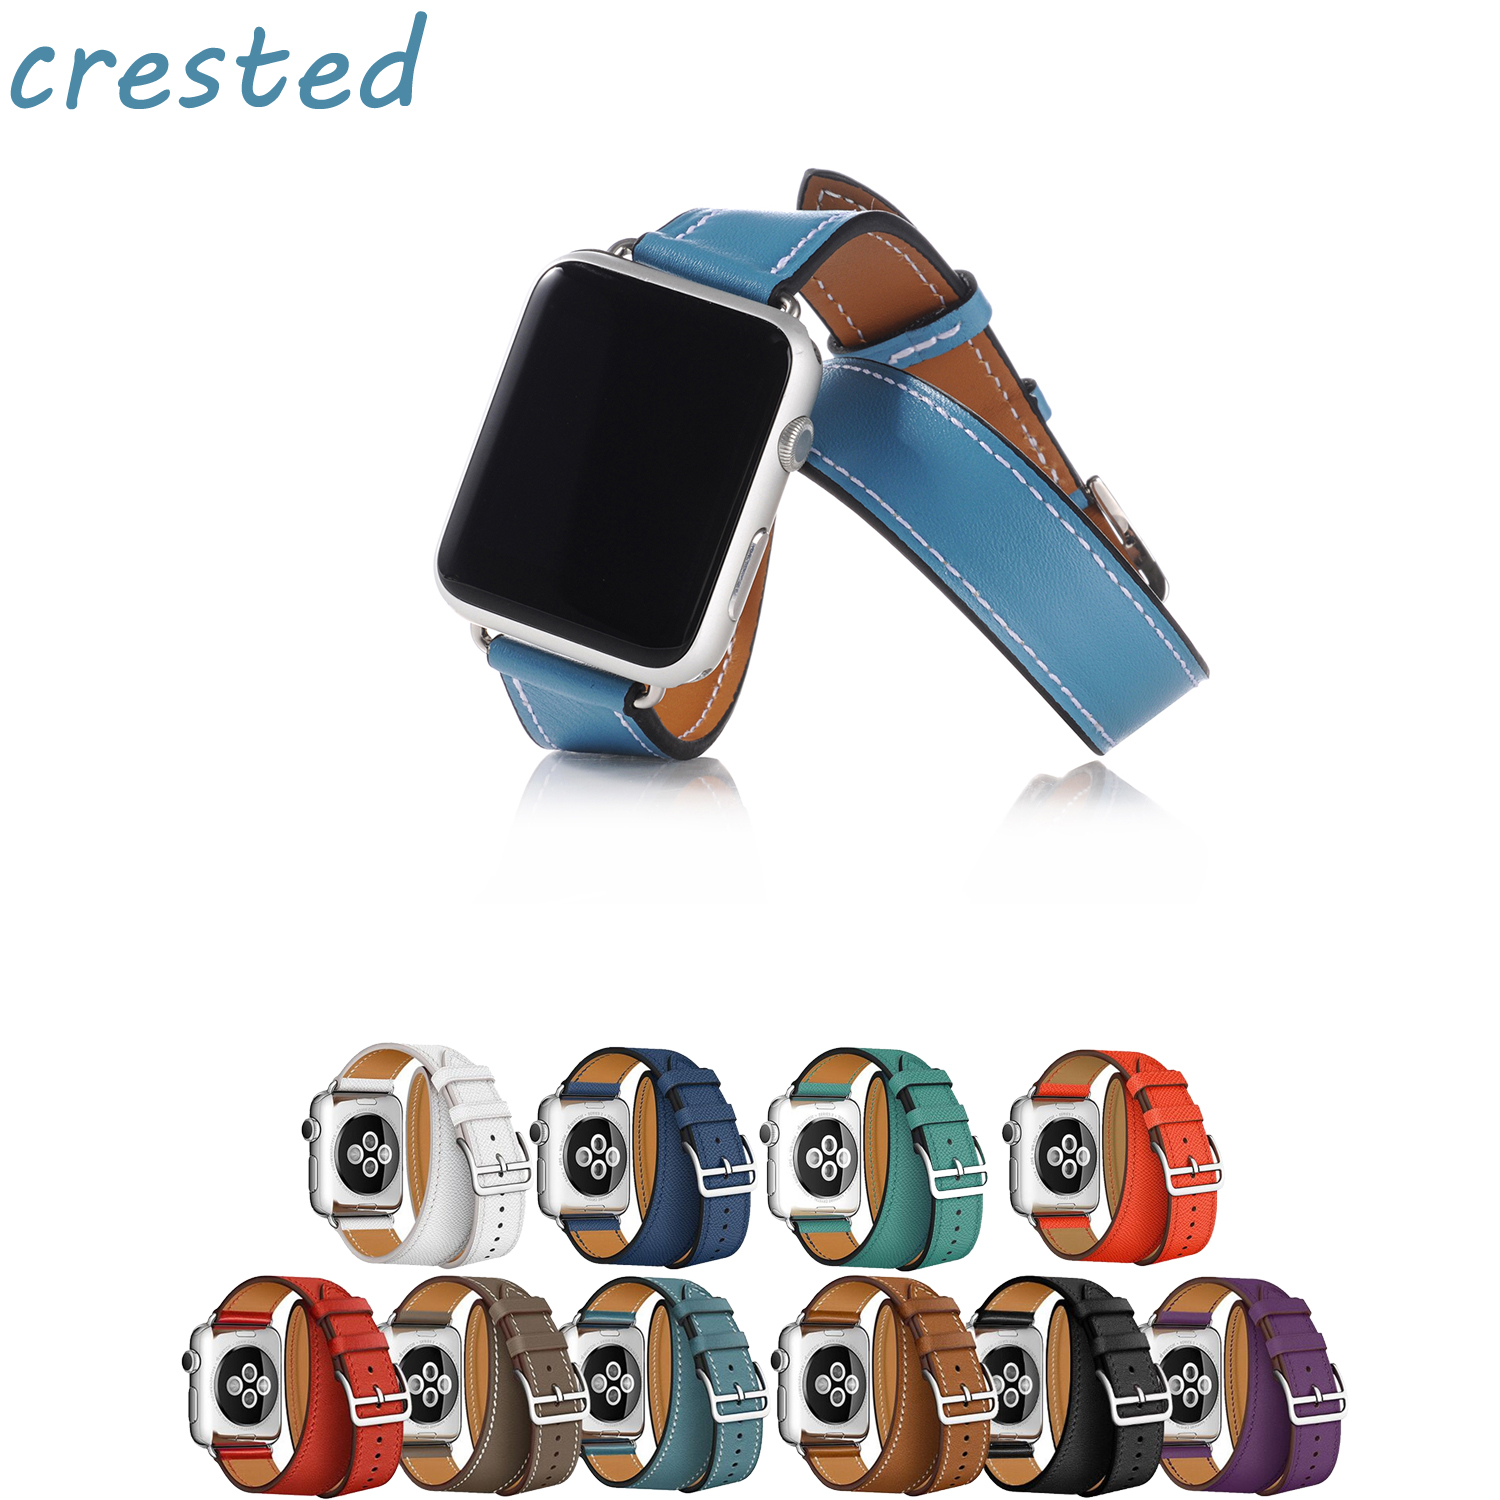 CRESTED Genuine Leather watch band for apple watch 3 42mm 38mm strap bracelet for iwatch Hermes 3/2/1 Double tour clock band istrap black brown red france genuine calf leather single tour bracelet watch strap for iwatch apple watch band 38mm 42mm